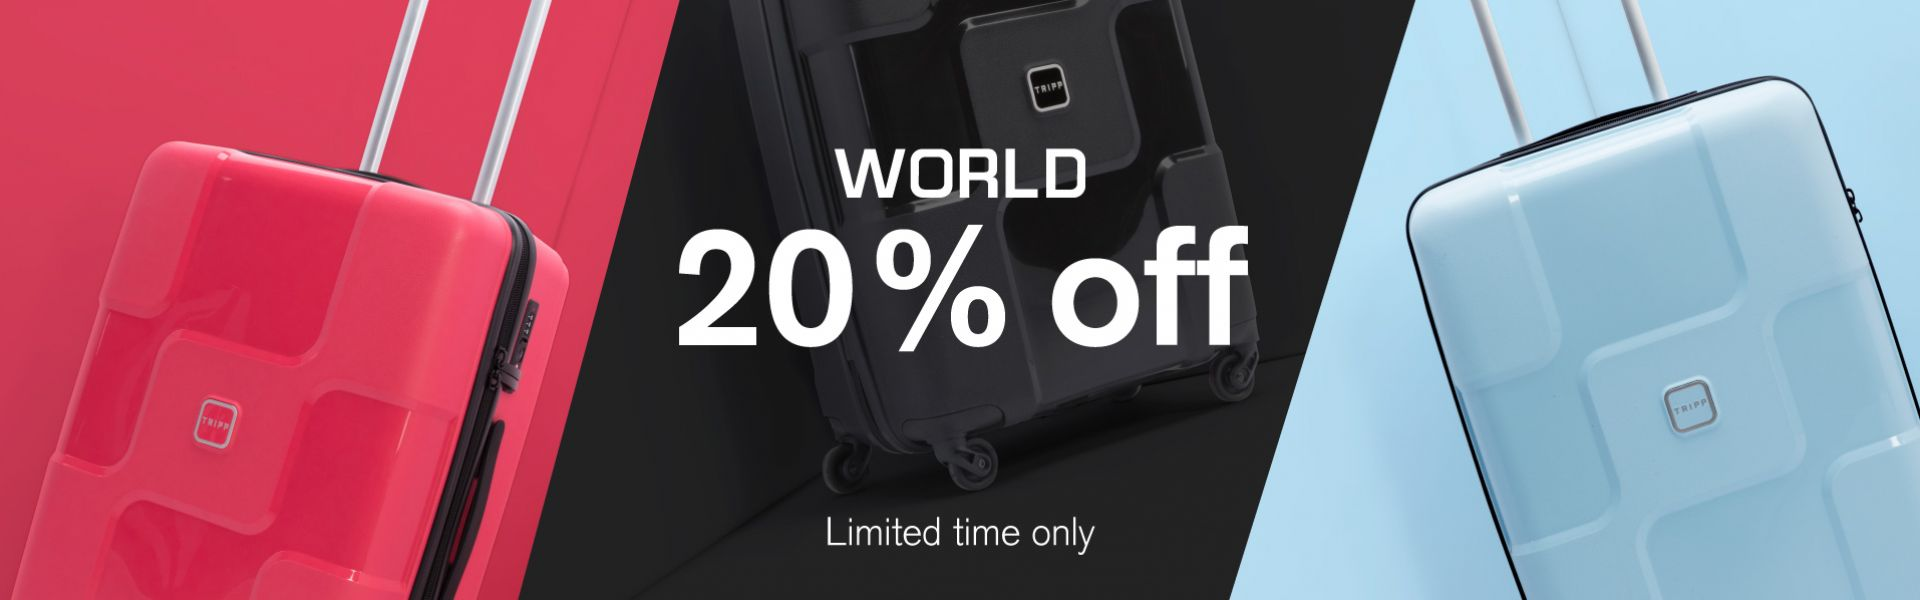 World 20% off